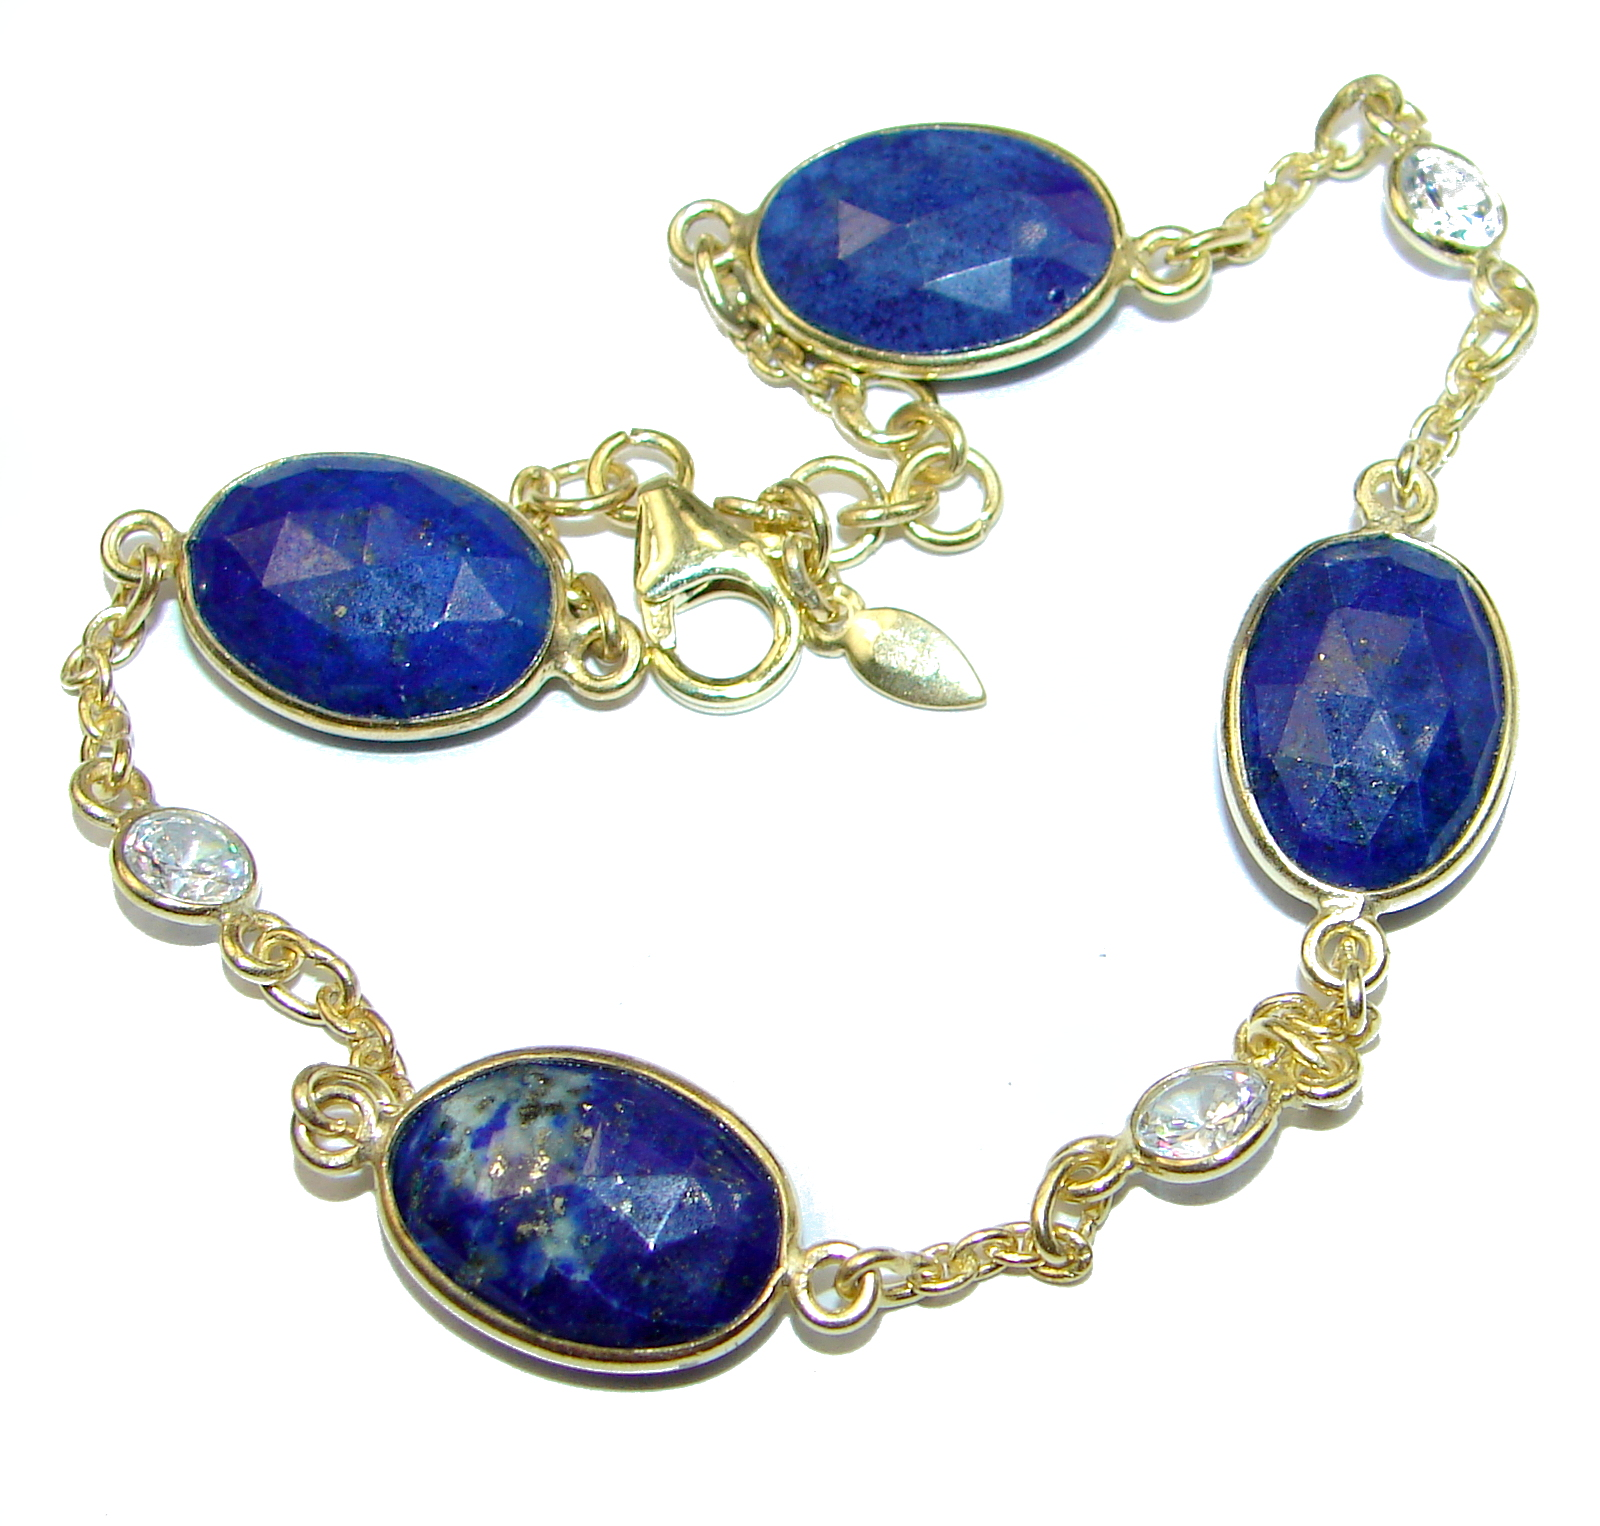 Flawless Passion Lapis Lazuli Gold over .925 Sterling Silver Bracelet